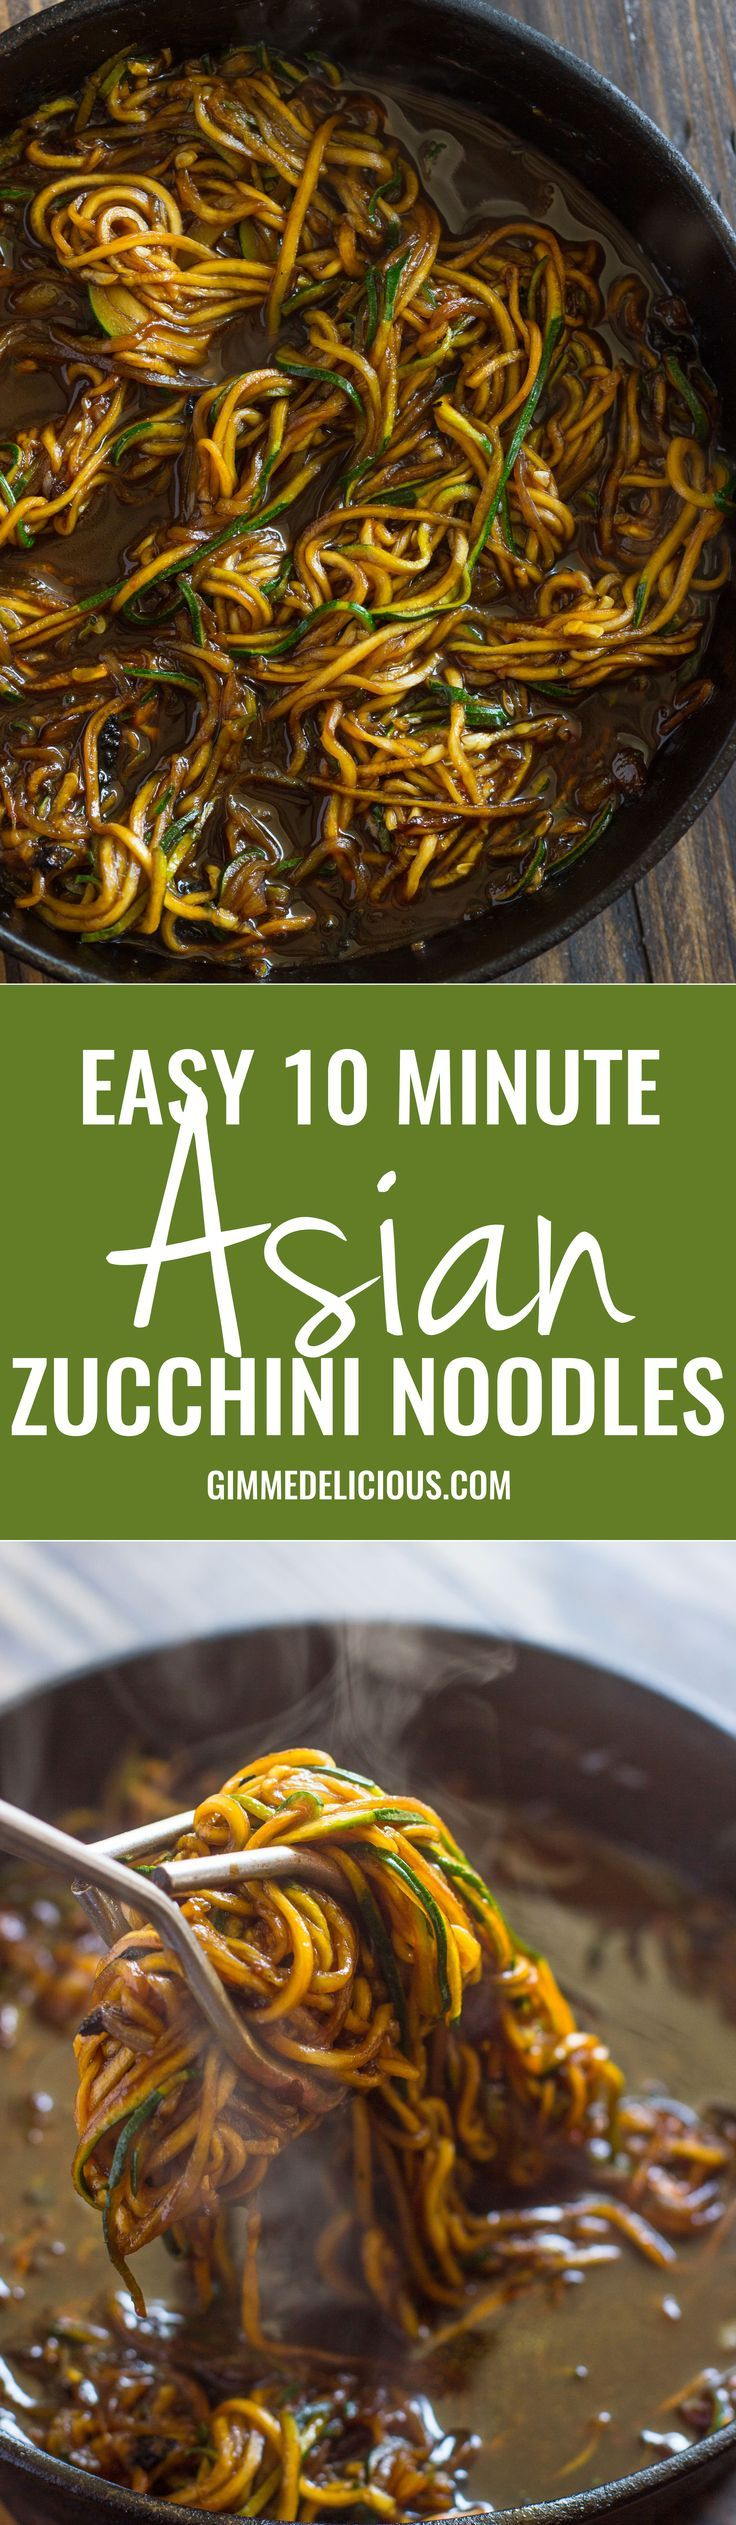 Easy 10 Minute Asian Zucchini Noodles #zucchininoodles